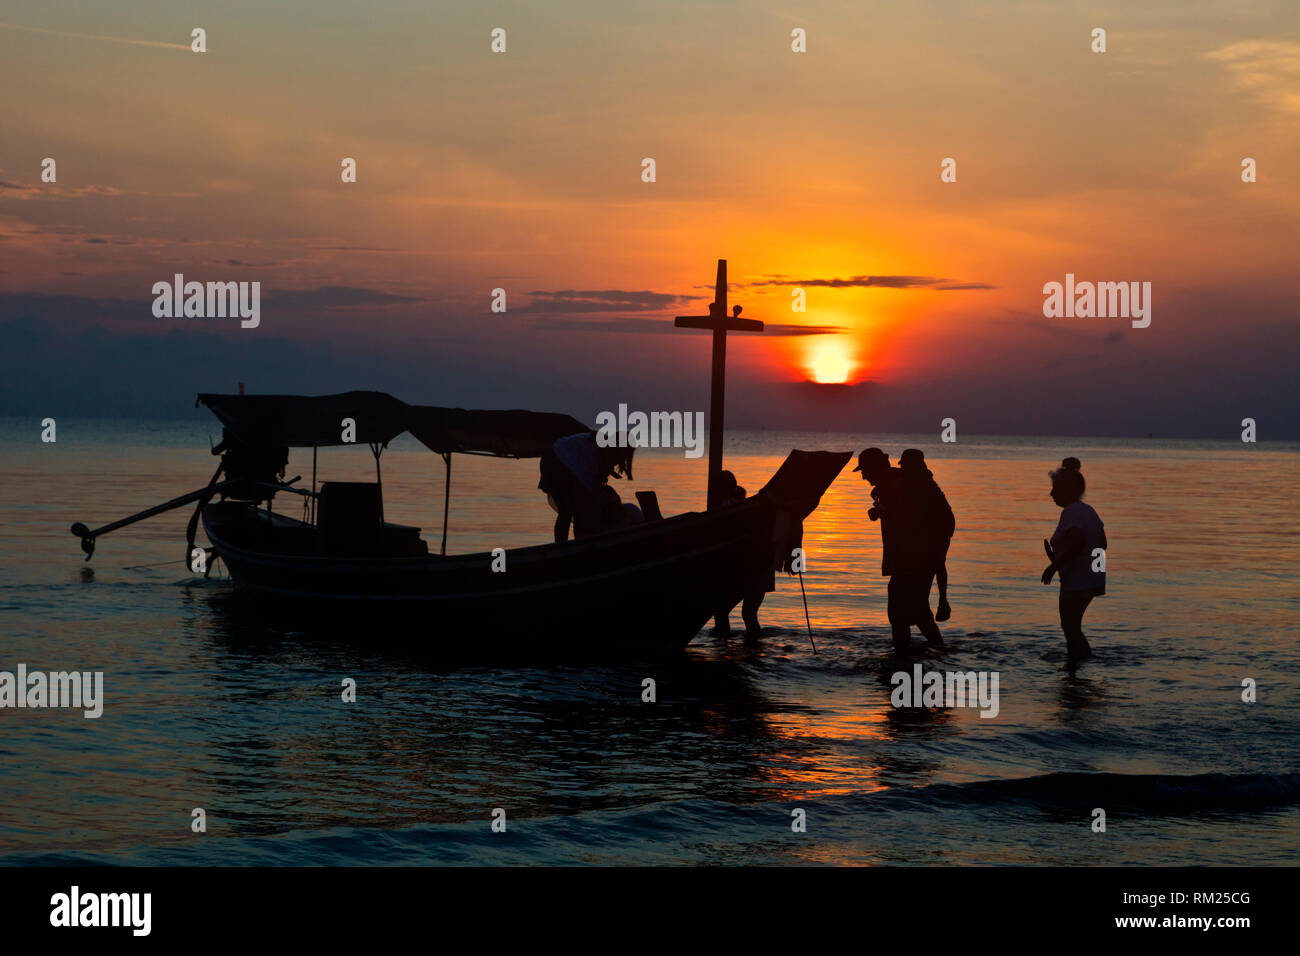 Getting on a longboat at sunrise on the beach of KHANOM, THAILAND - Stock Image